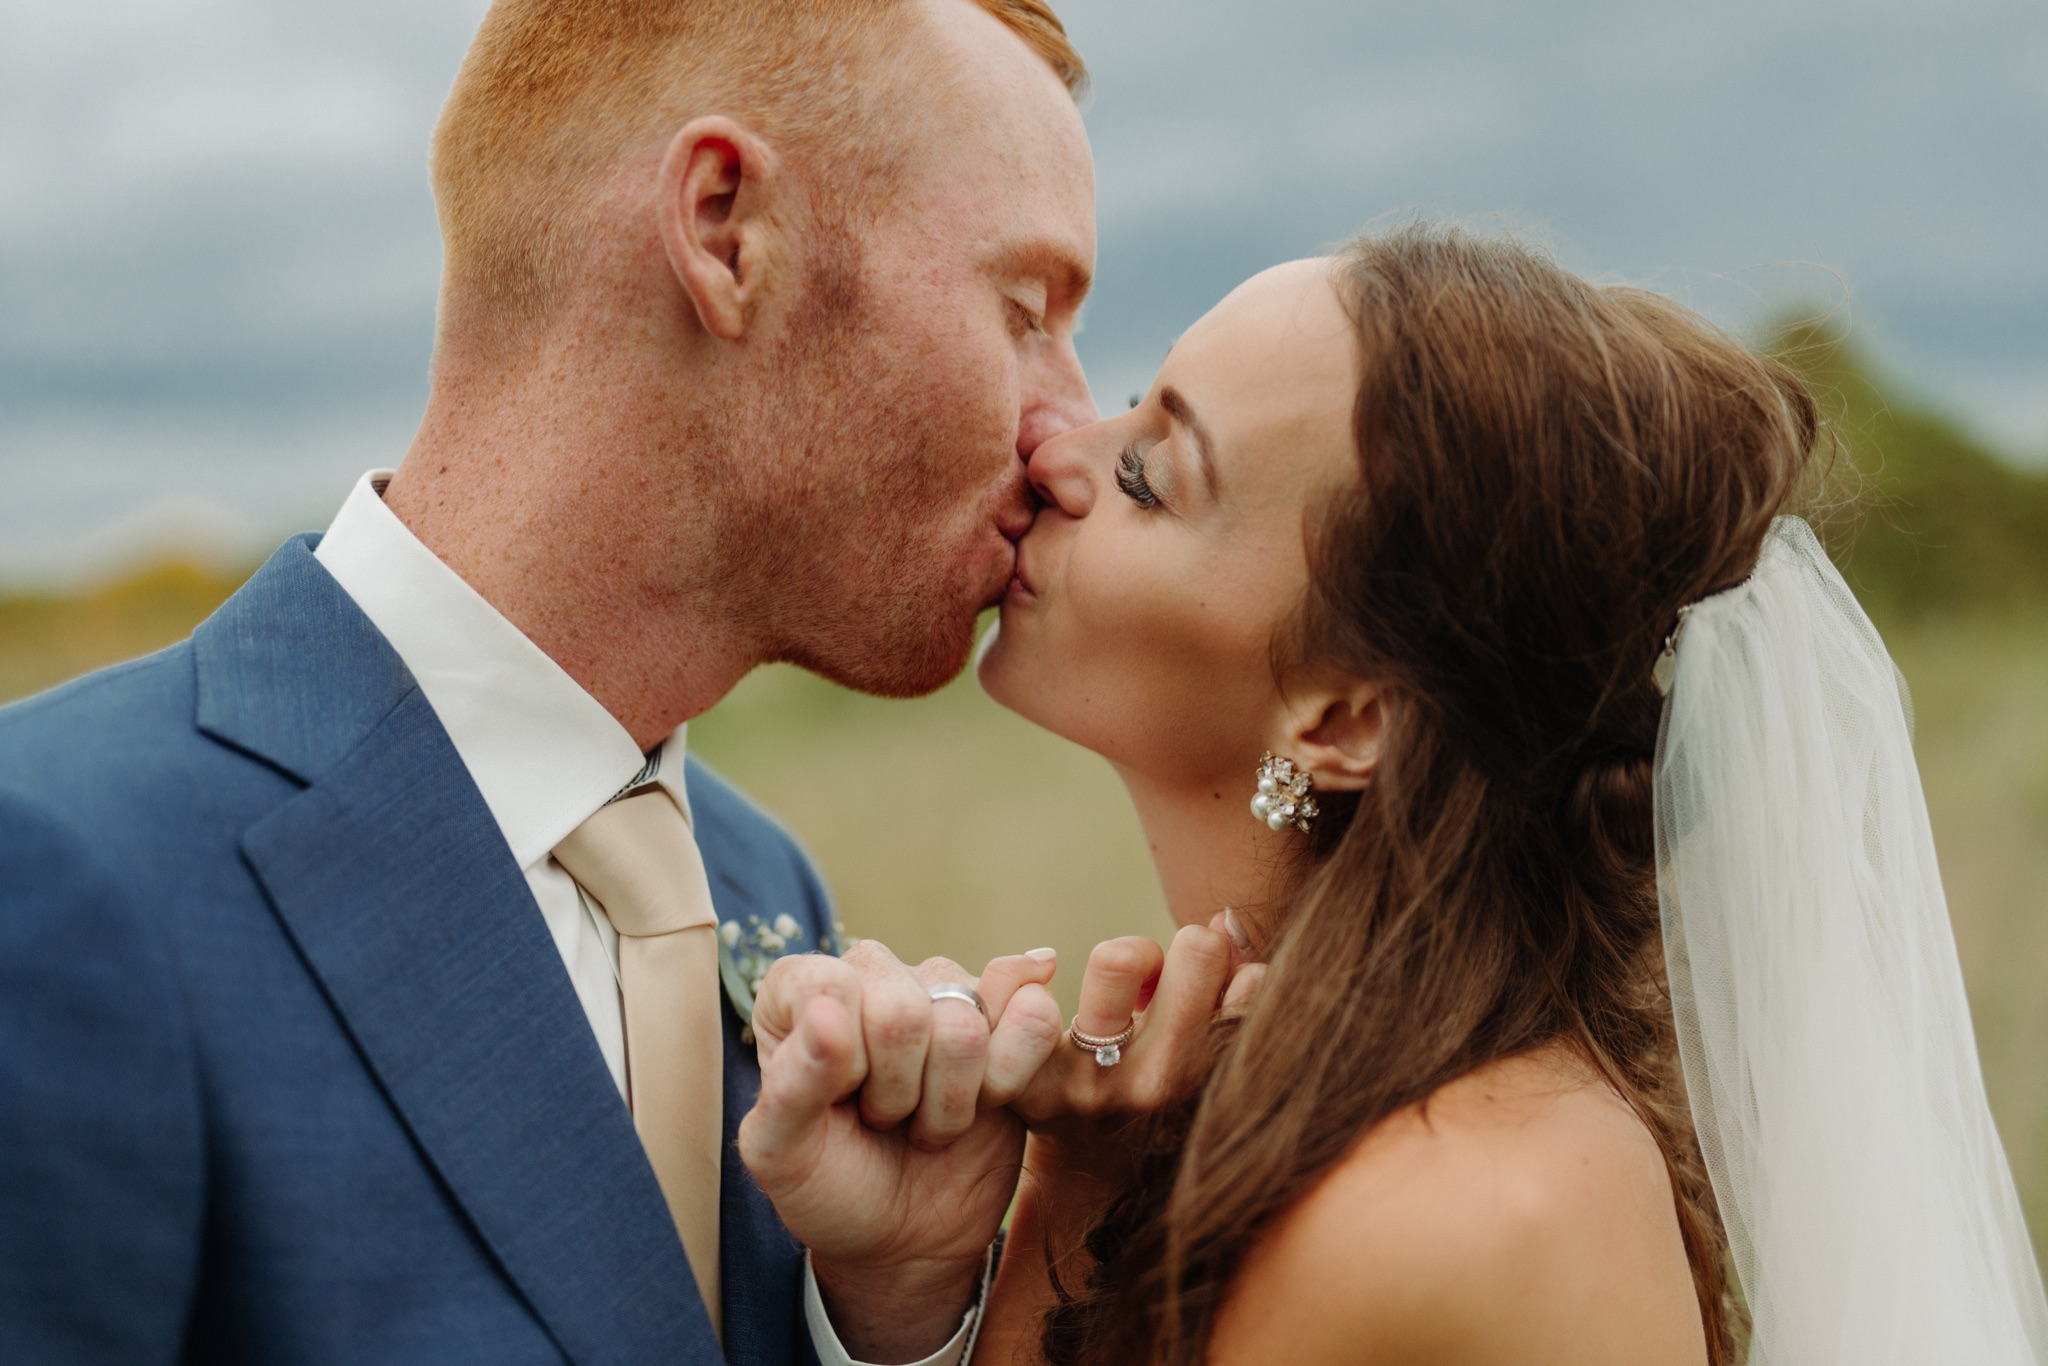 bride and groom kissing while crossing pinky fingers